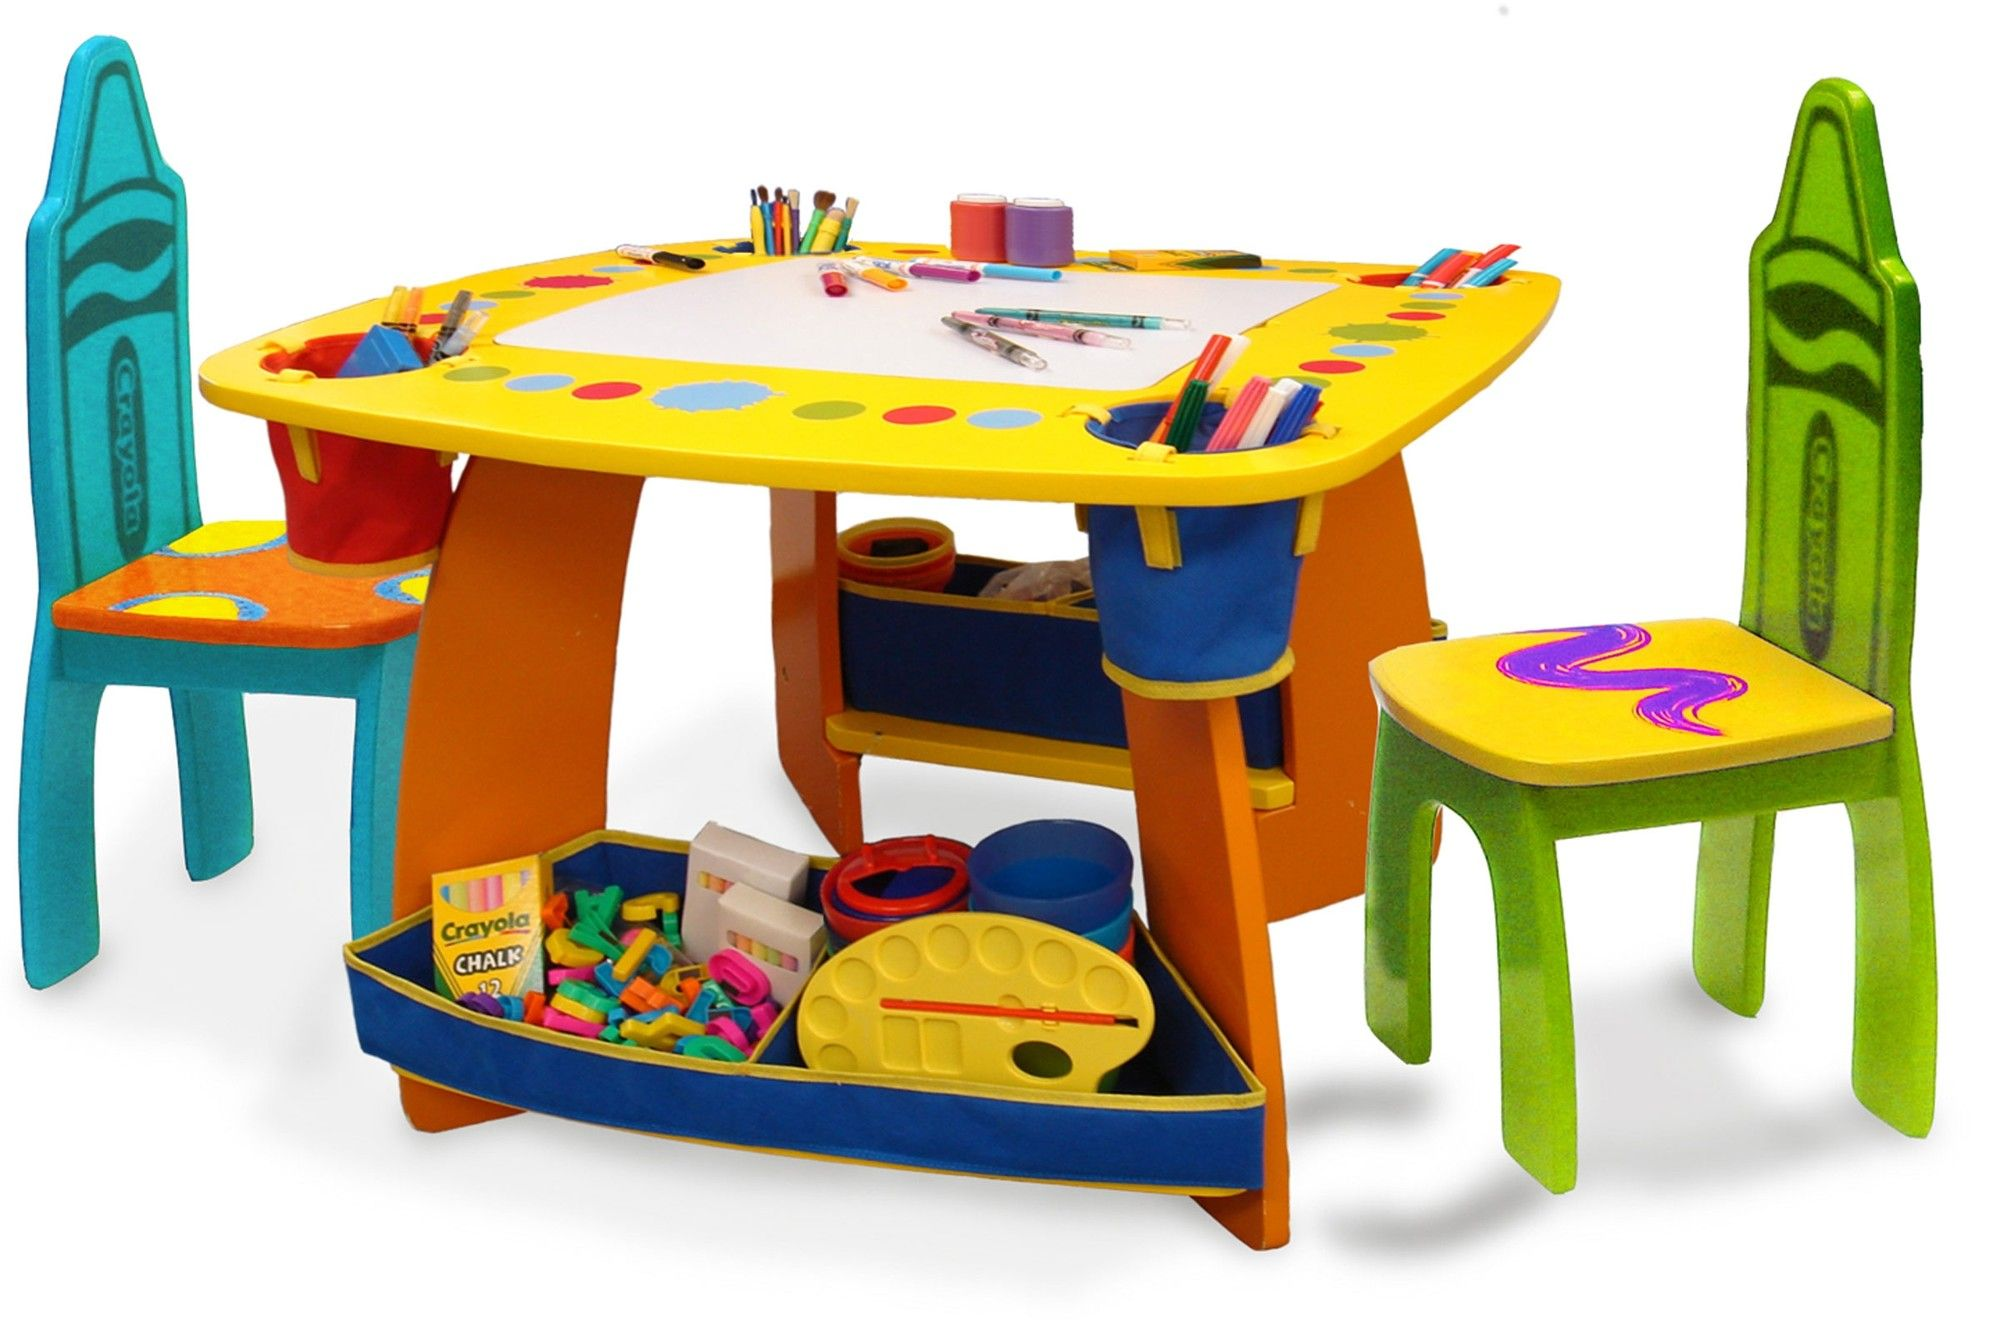 Crayola wooden kids 3 piece table and chair set includes a square table whiteboard 2 kids sized chairs two fabric storage bins 4 fabric cup holder